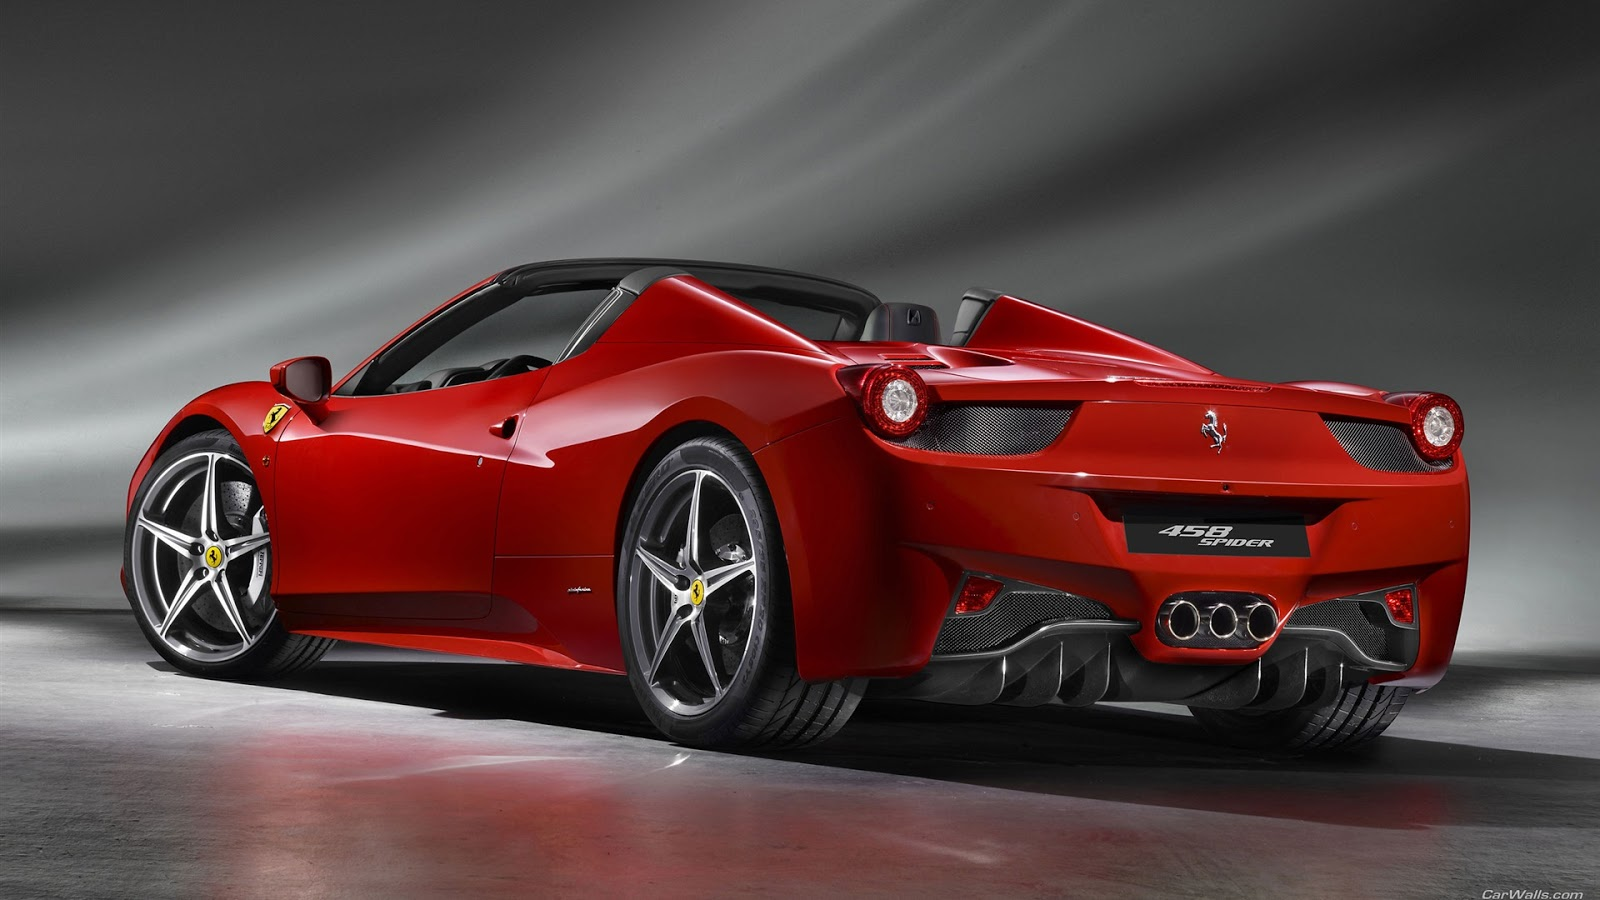 Free Desktop Wallpaper Ferrari Car Wallpaper Ferrari Car Images